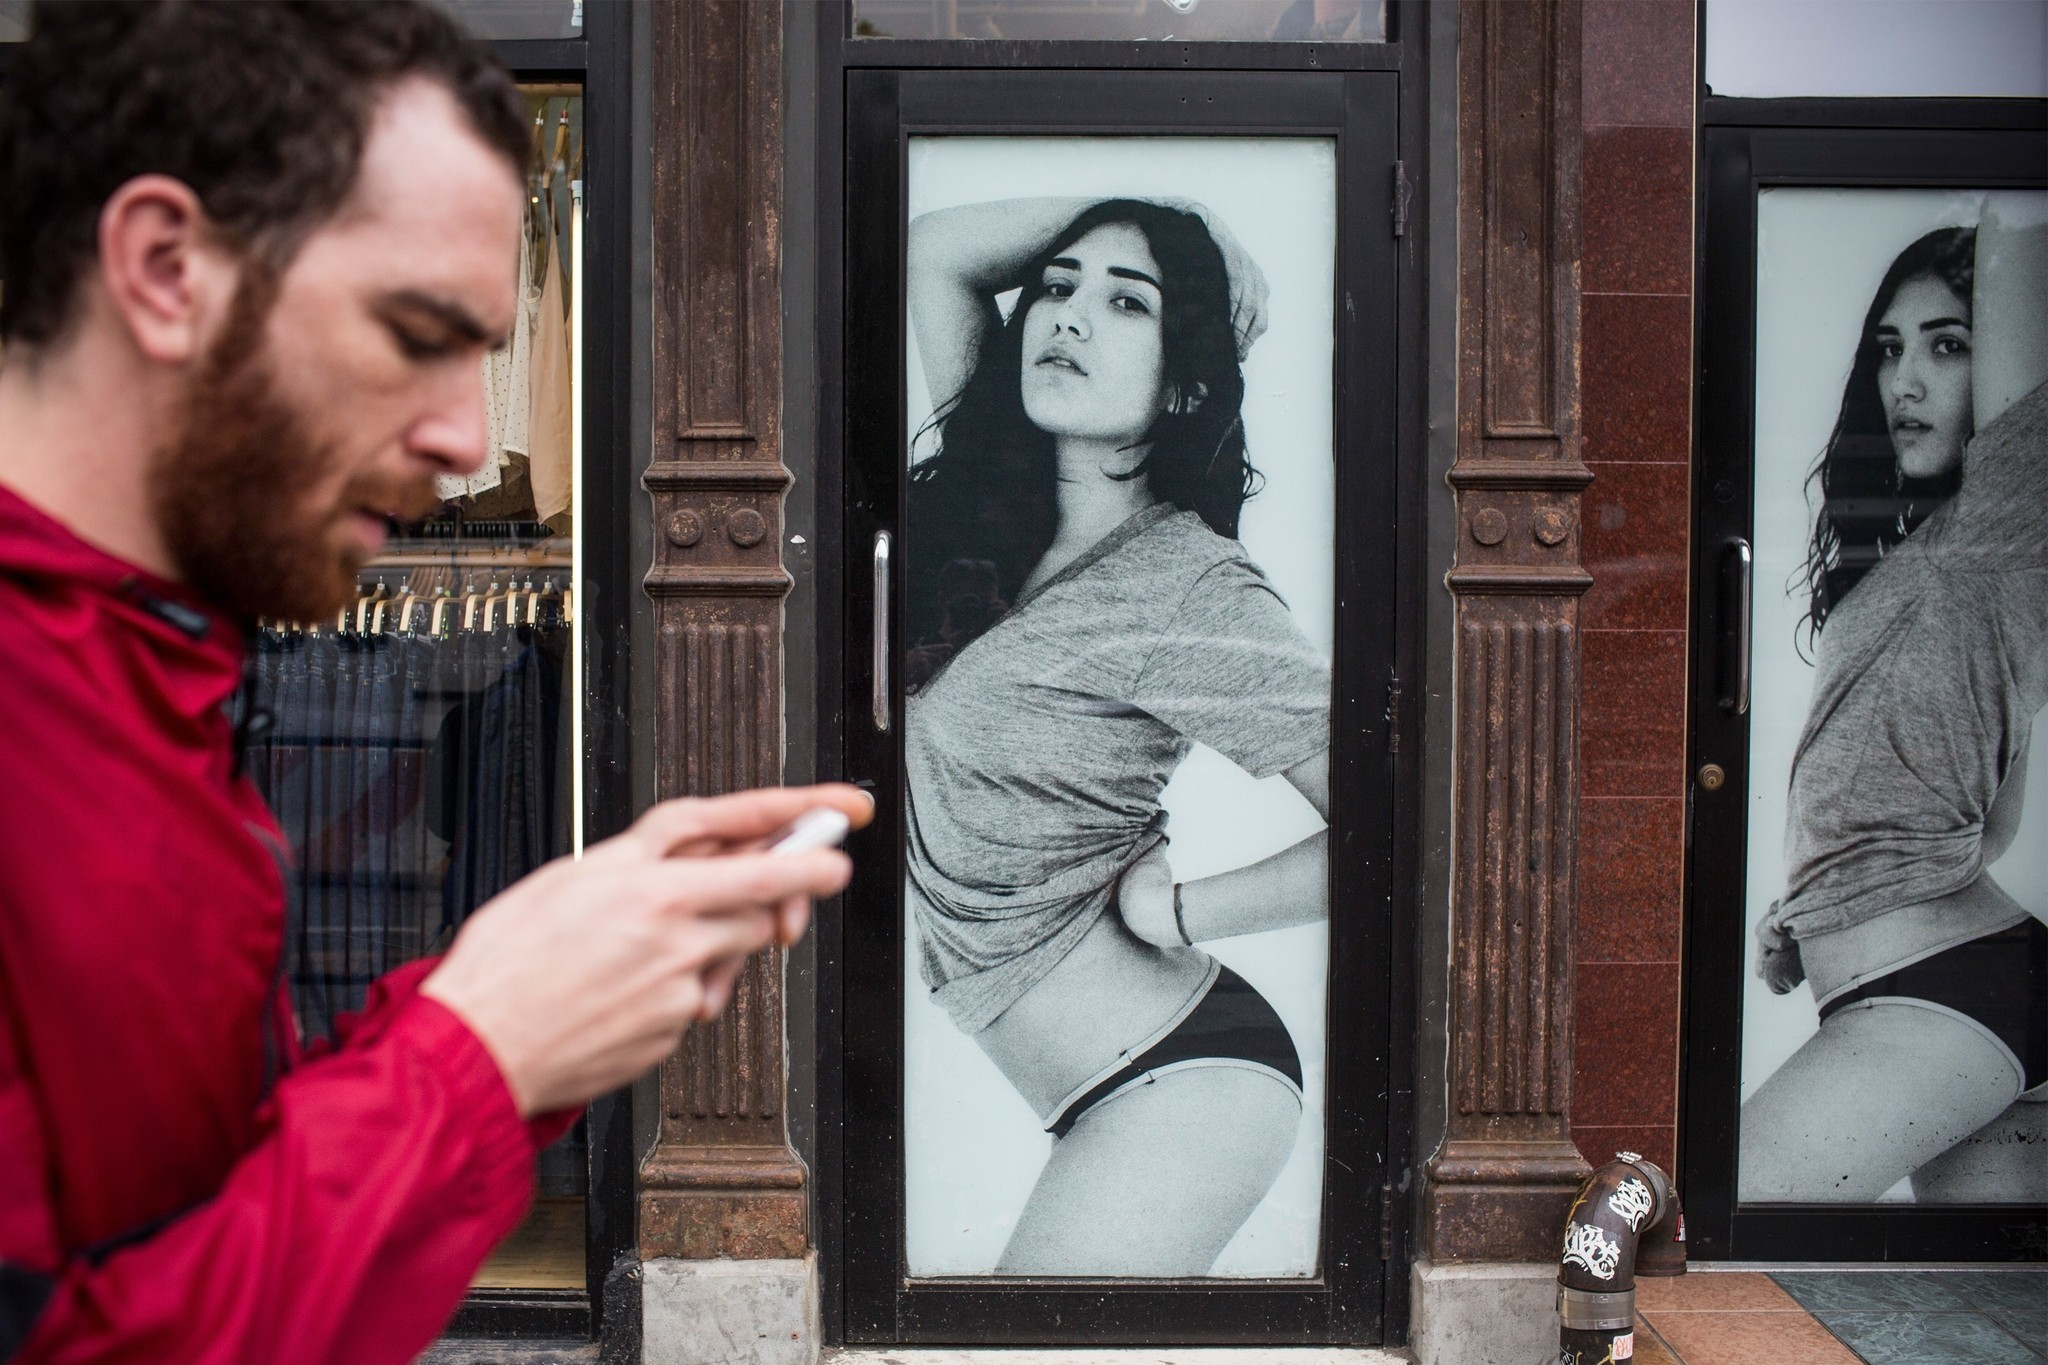 American Apparel To Appoint New Directors Including First